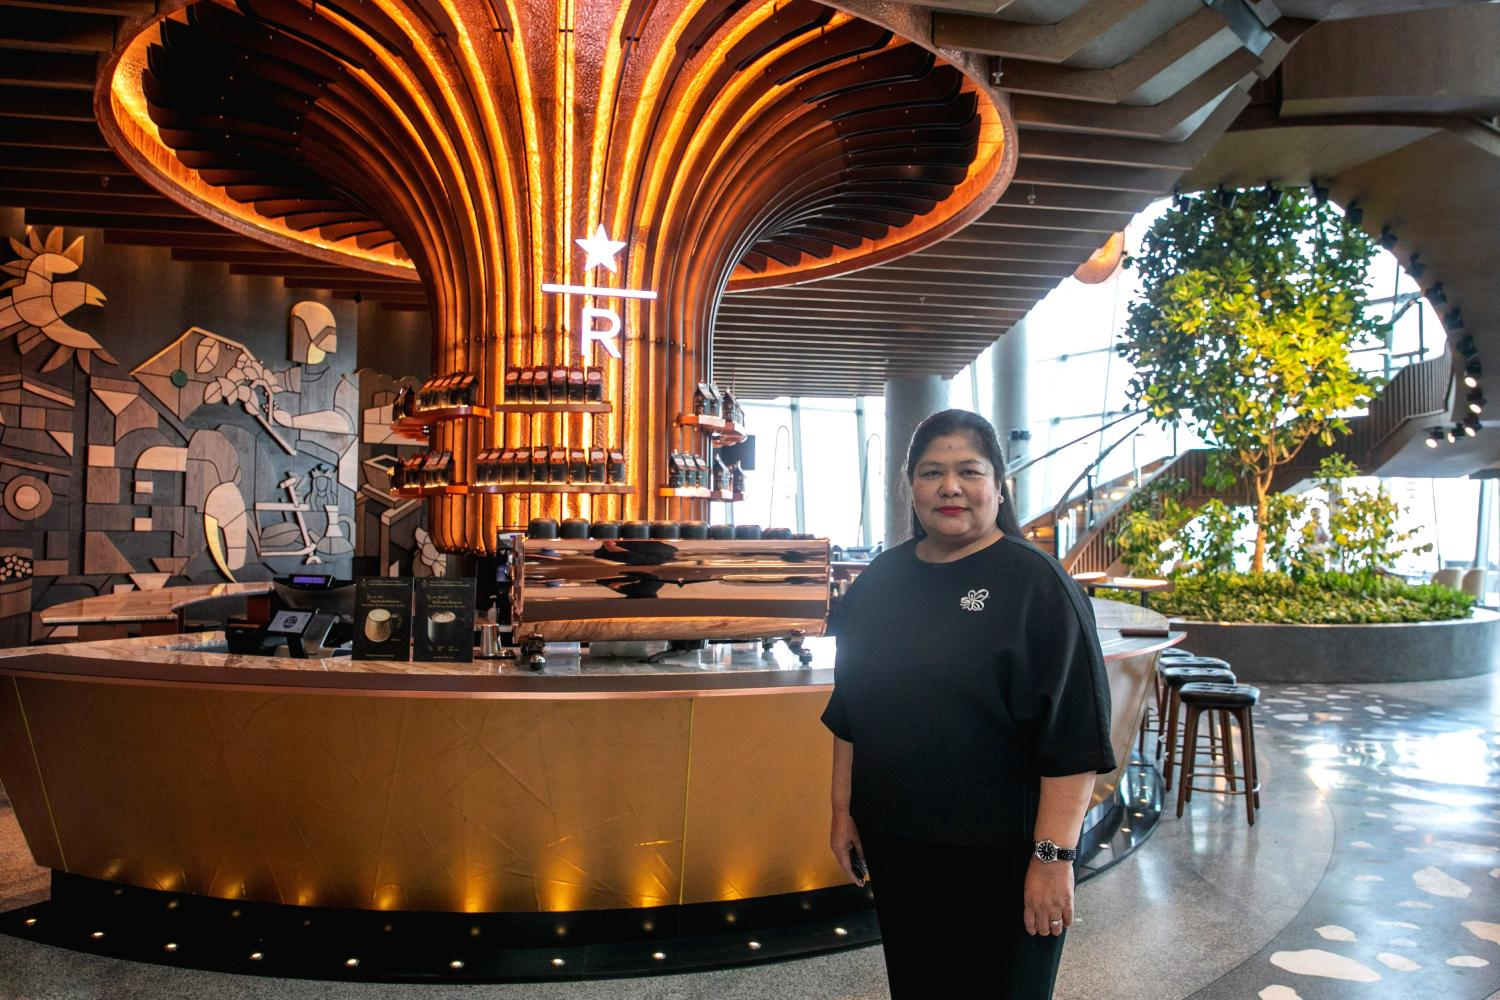 Ms Nednapa pays a visit to Starbucks Reserve Chao Phraya Riverfront, the 417th Starbucks store in Thailand, which is set to open on Friday.